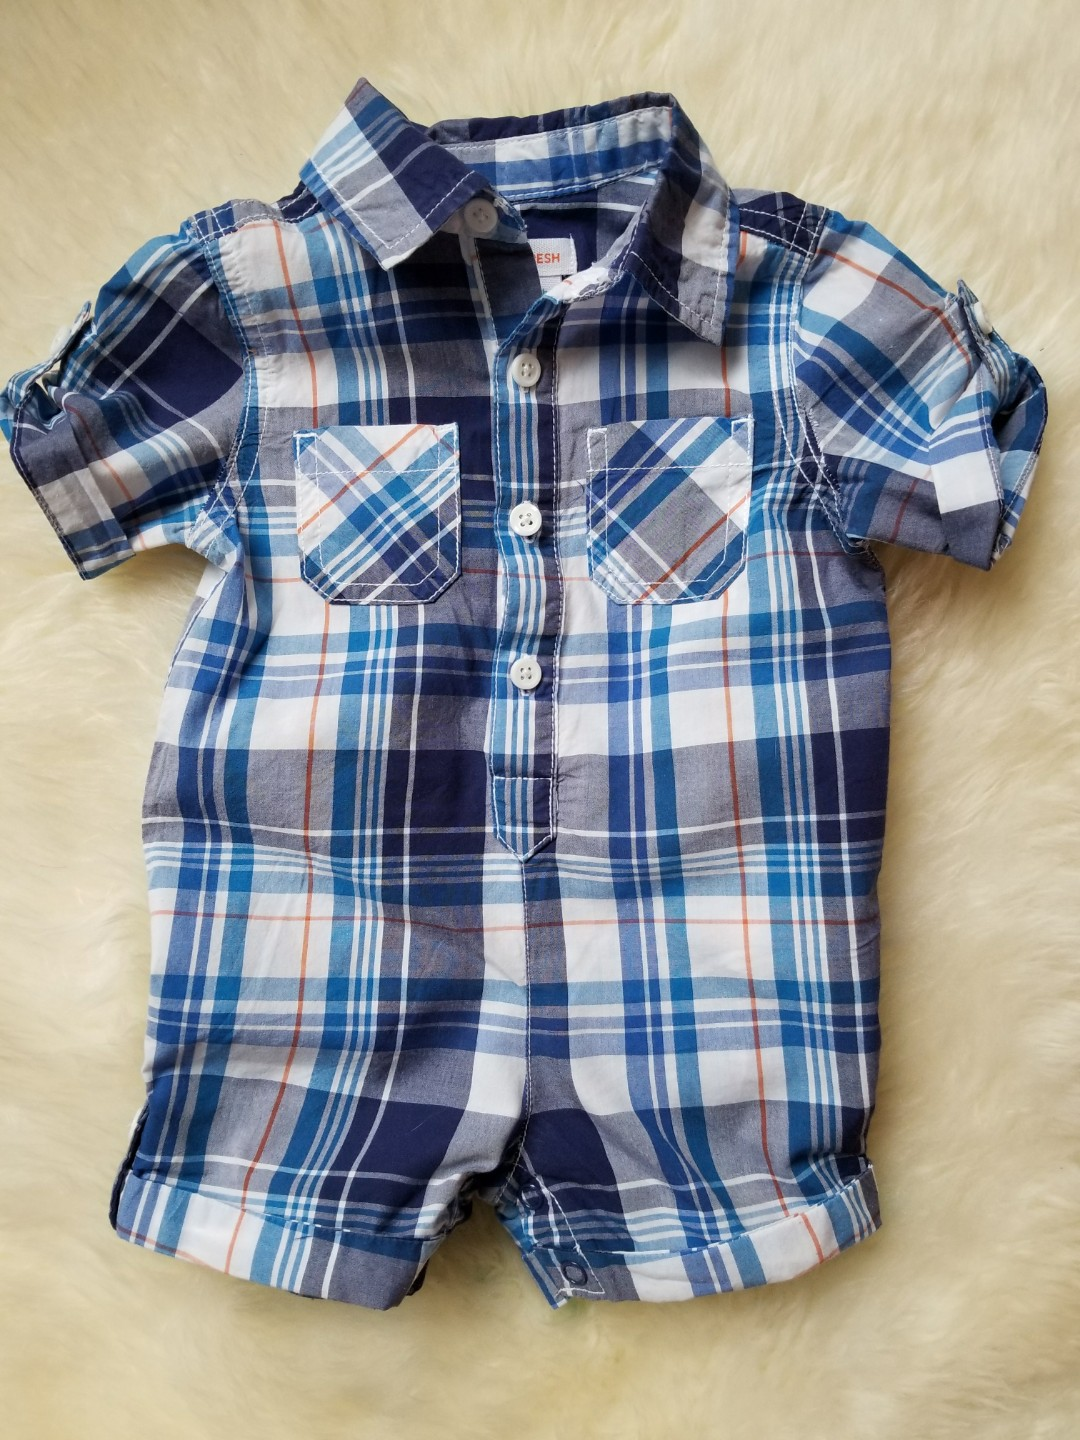 Size 3-6 mths. Perfect for spring break. Purchased new for $29. No